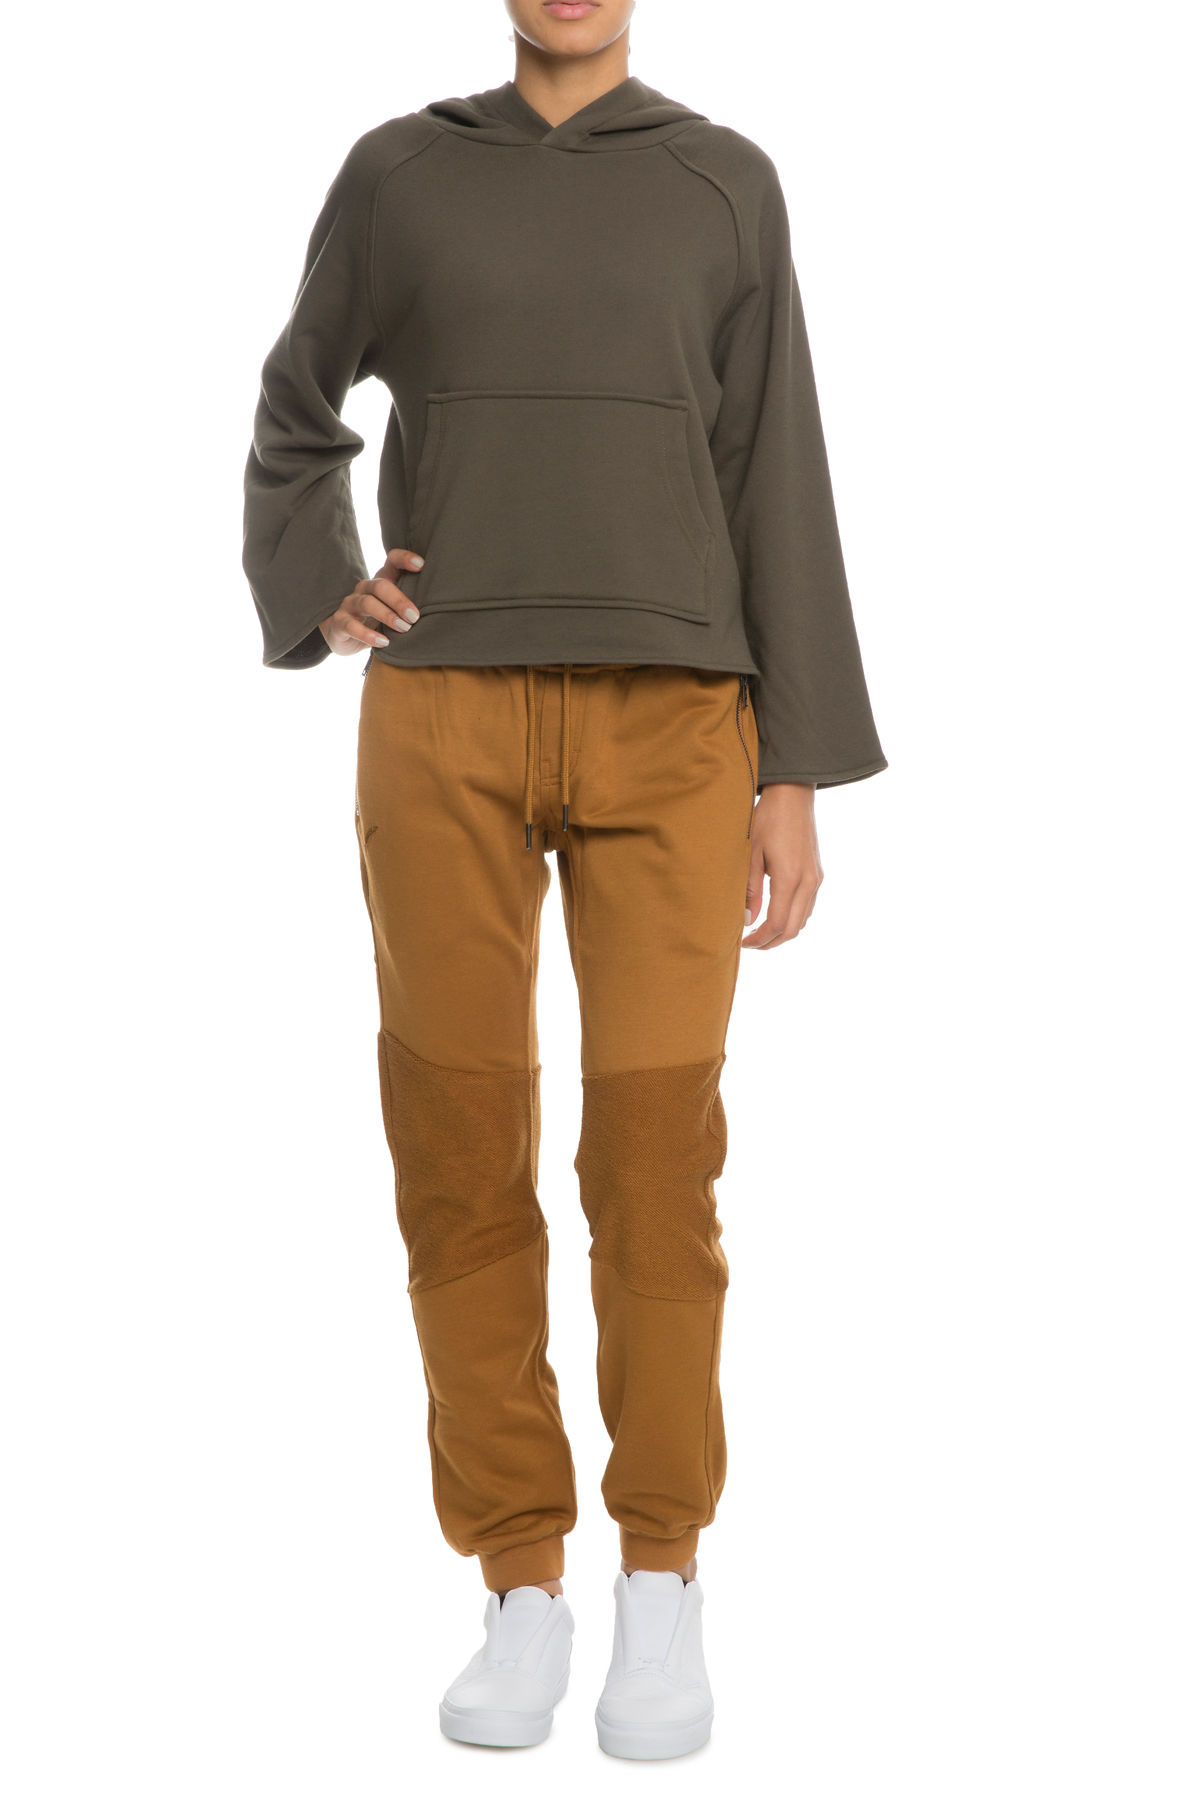 Image of The Cathy Hoodie in Olive